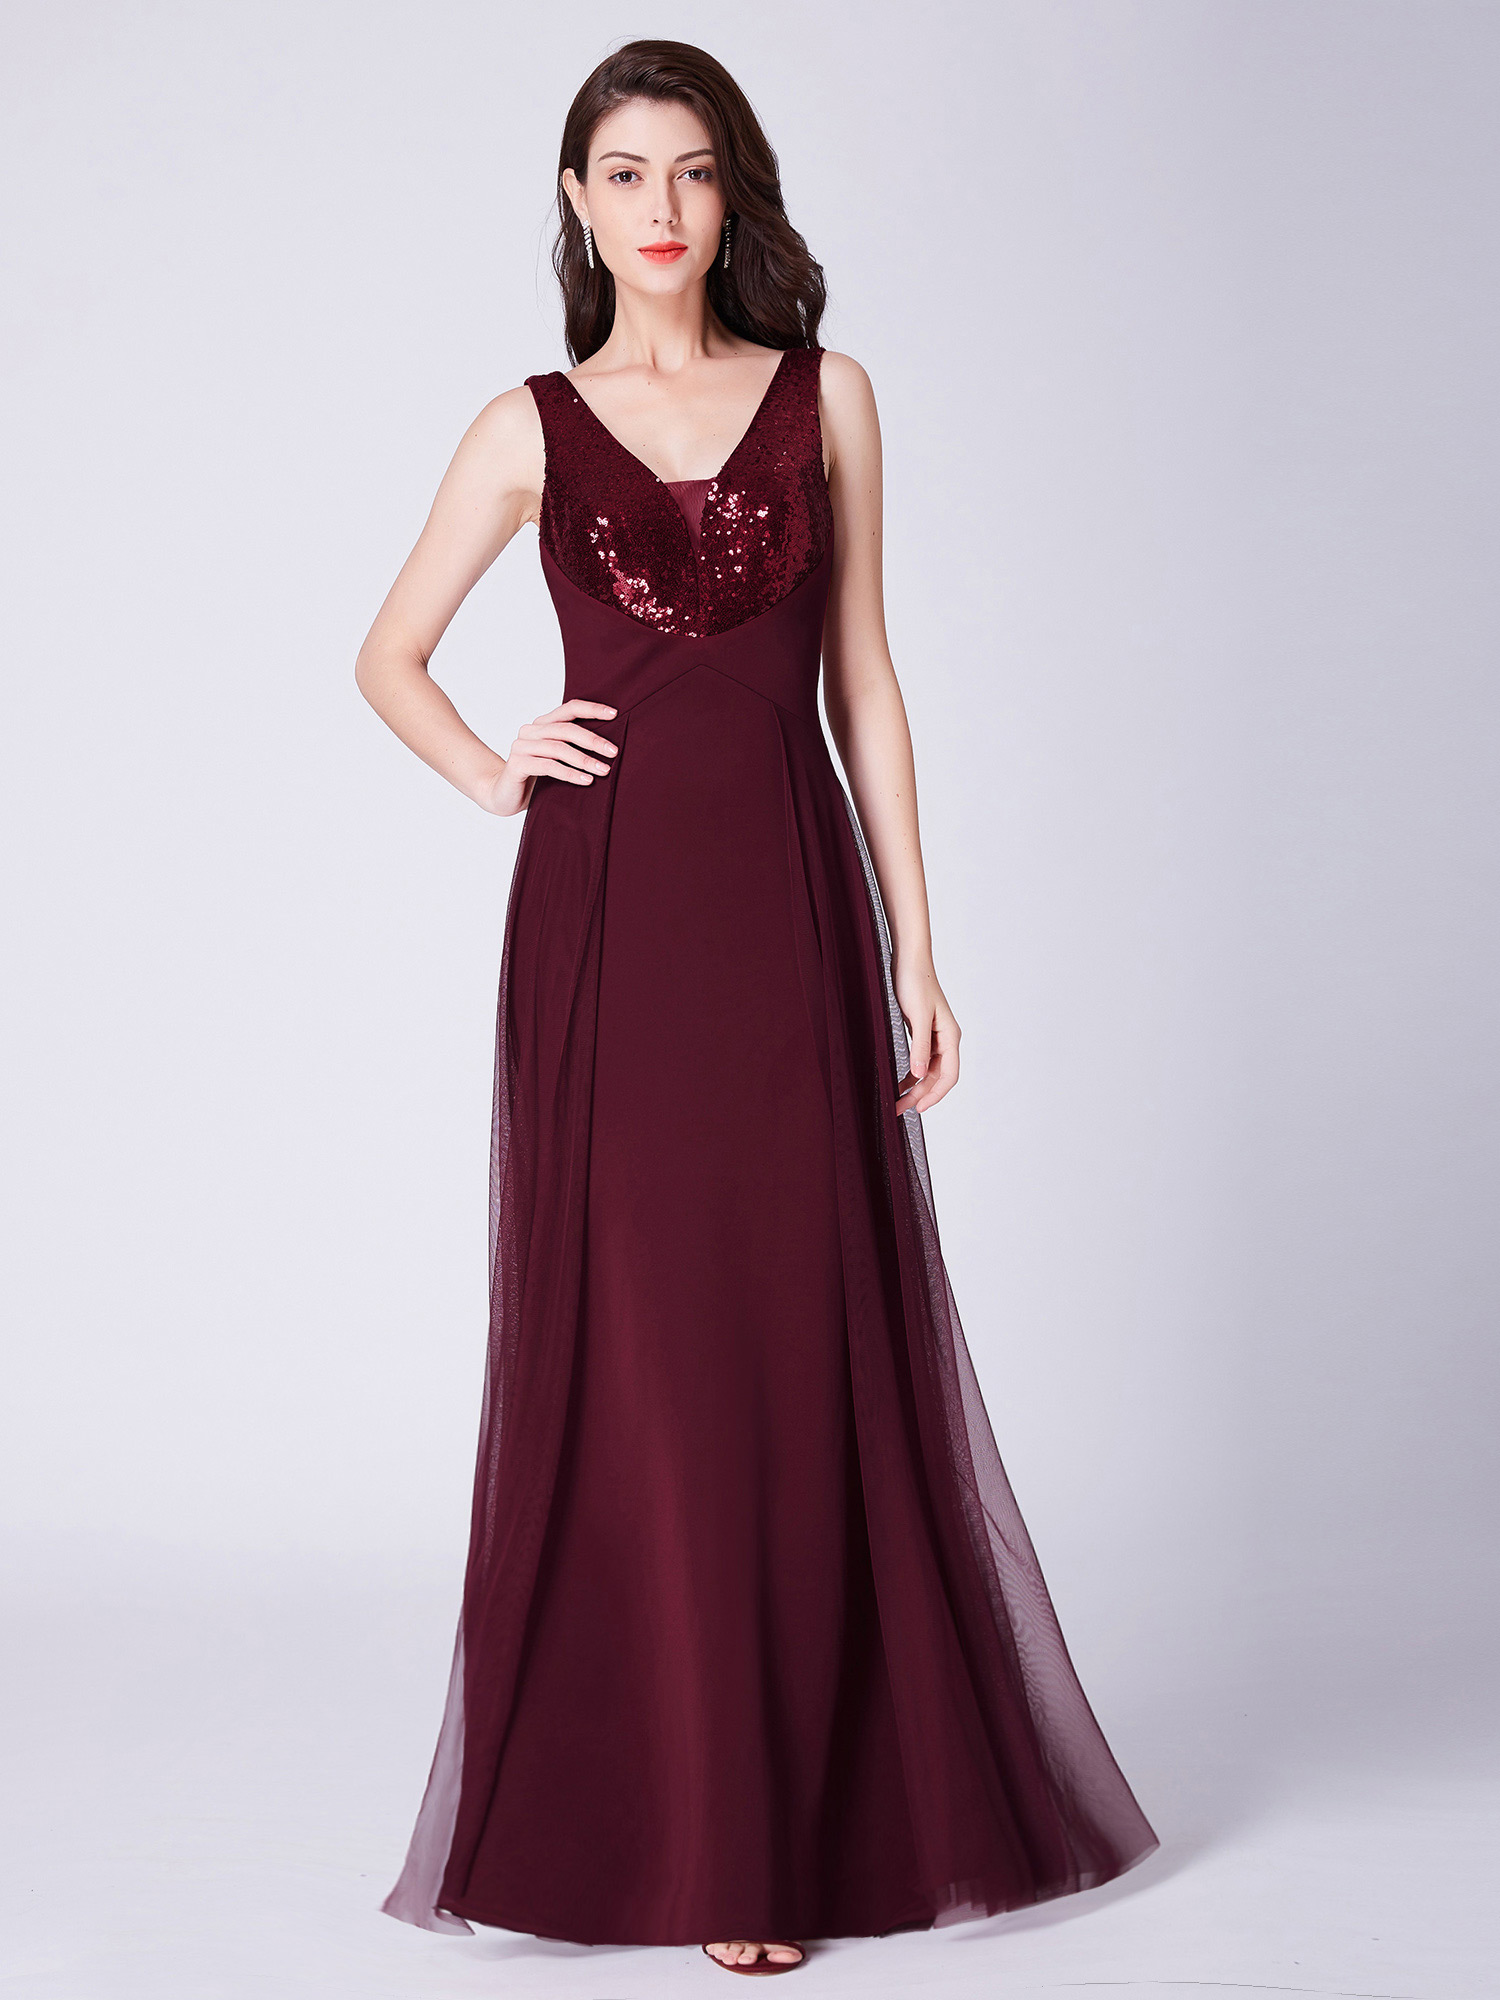 Ever-Pretty-US-Long-Sequins-Formal-Evening-Dresses-Cocktail-Party-Prom-Gown-7453 thumbnail 12